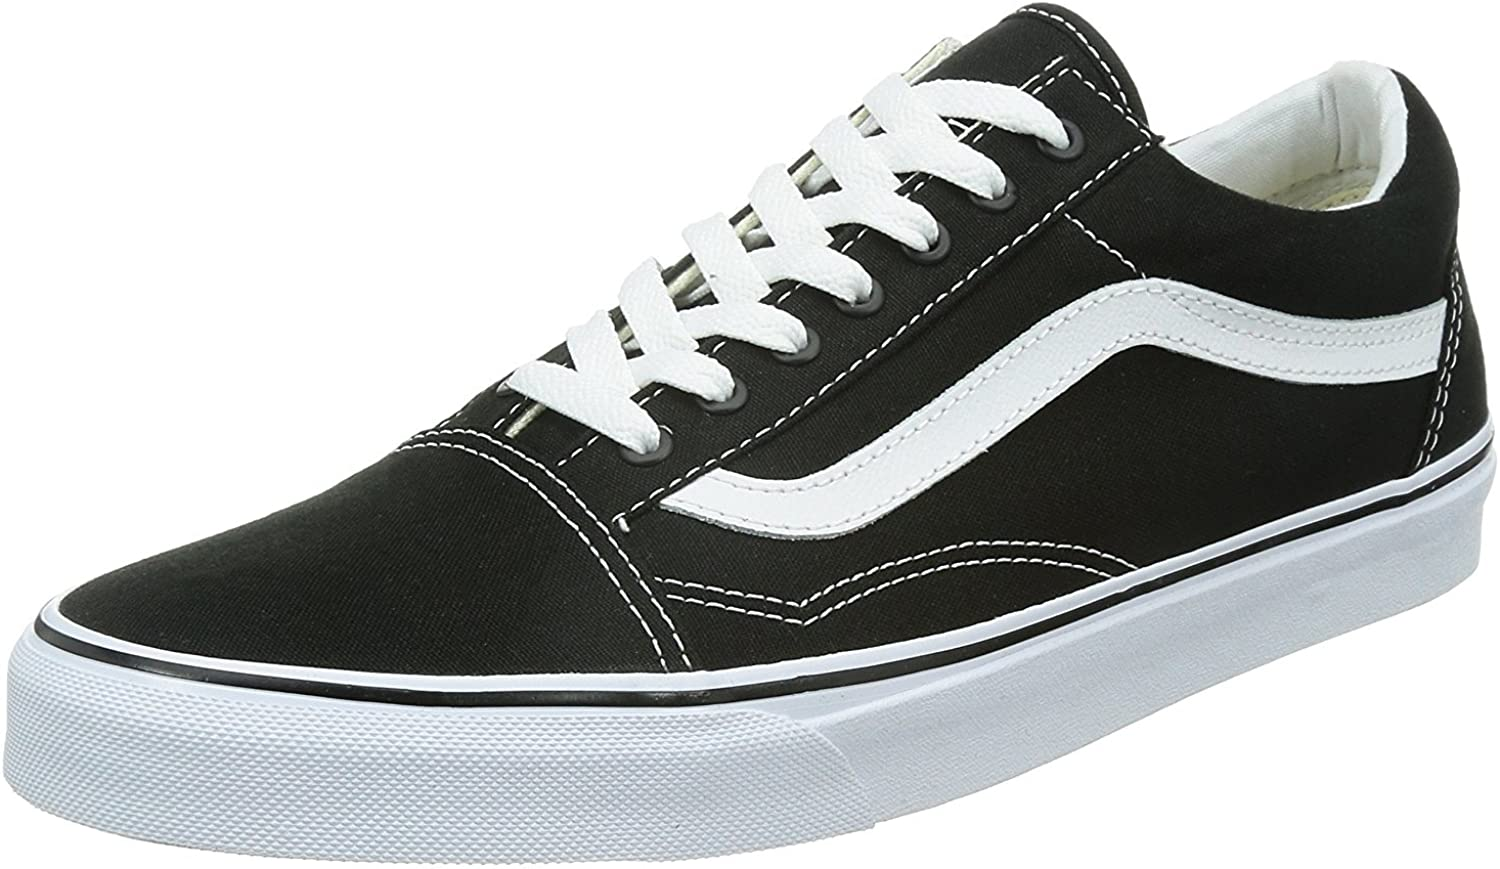 Genuine Free Shipping Vans Old Skool Unisex Adults' Black White Trainers Low-Top 55% OFF